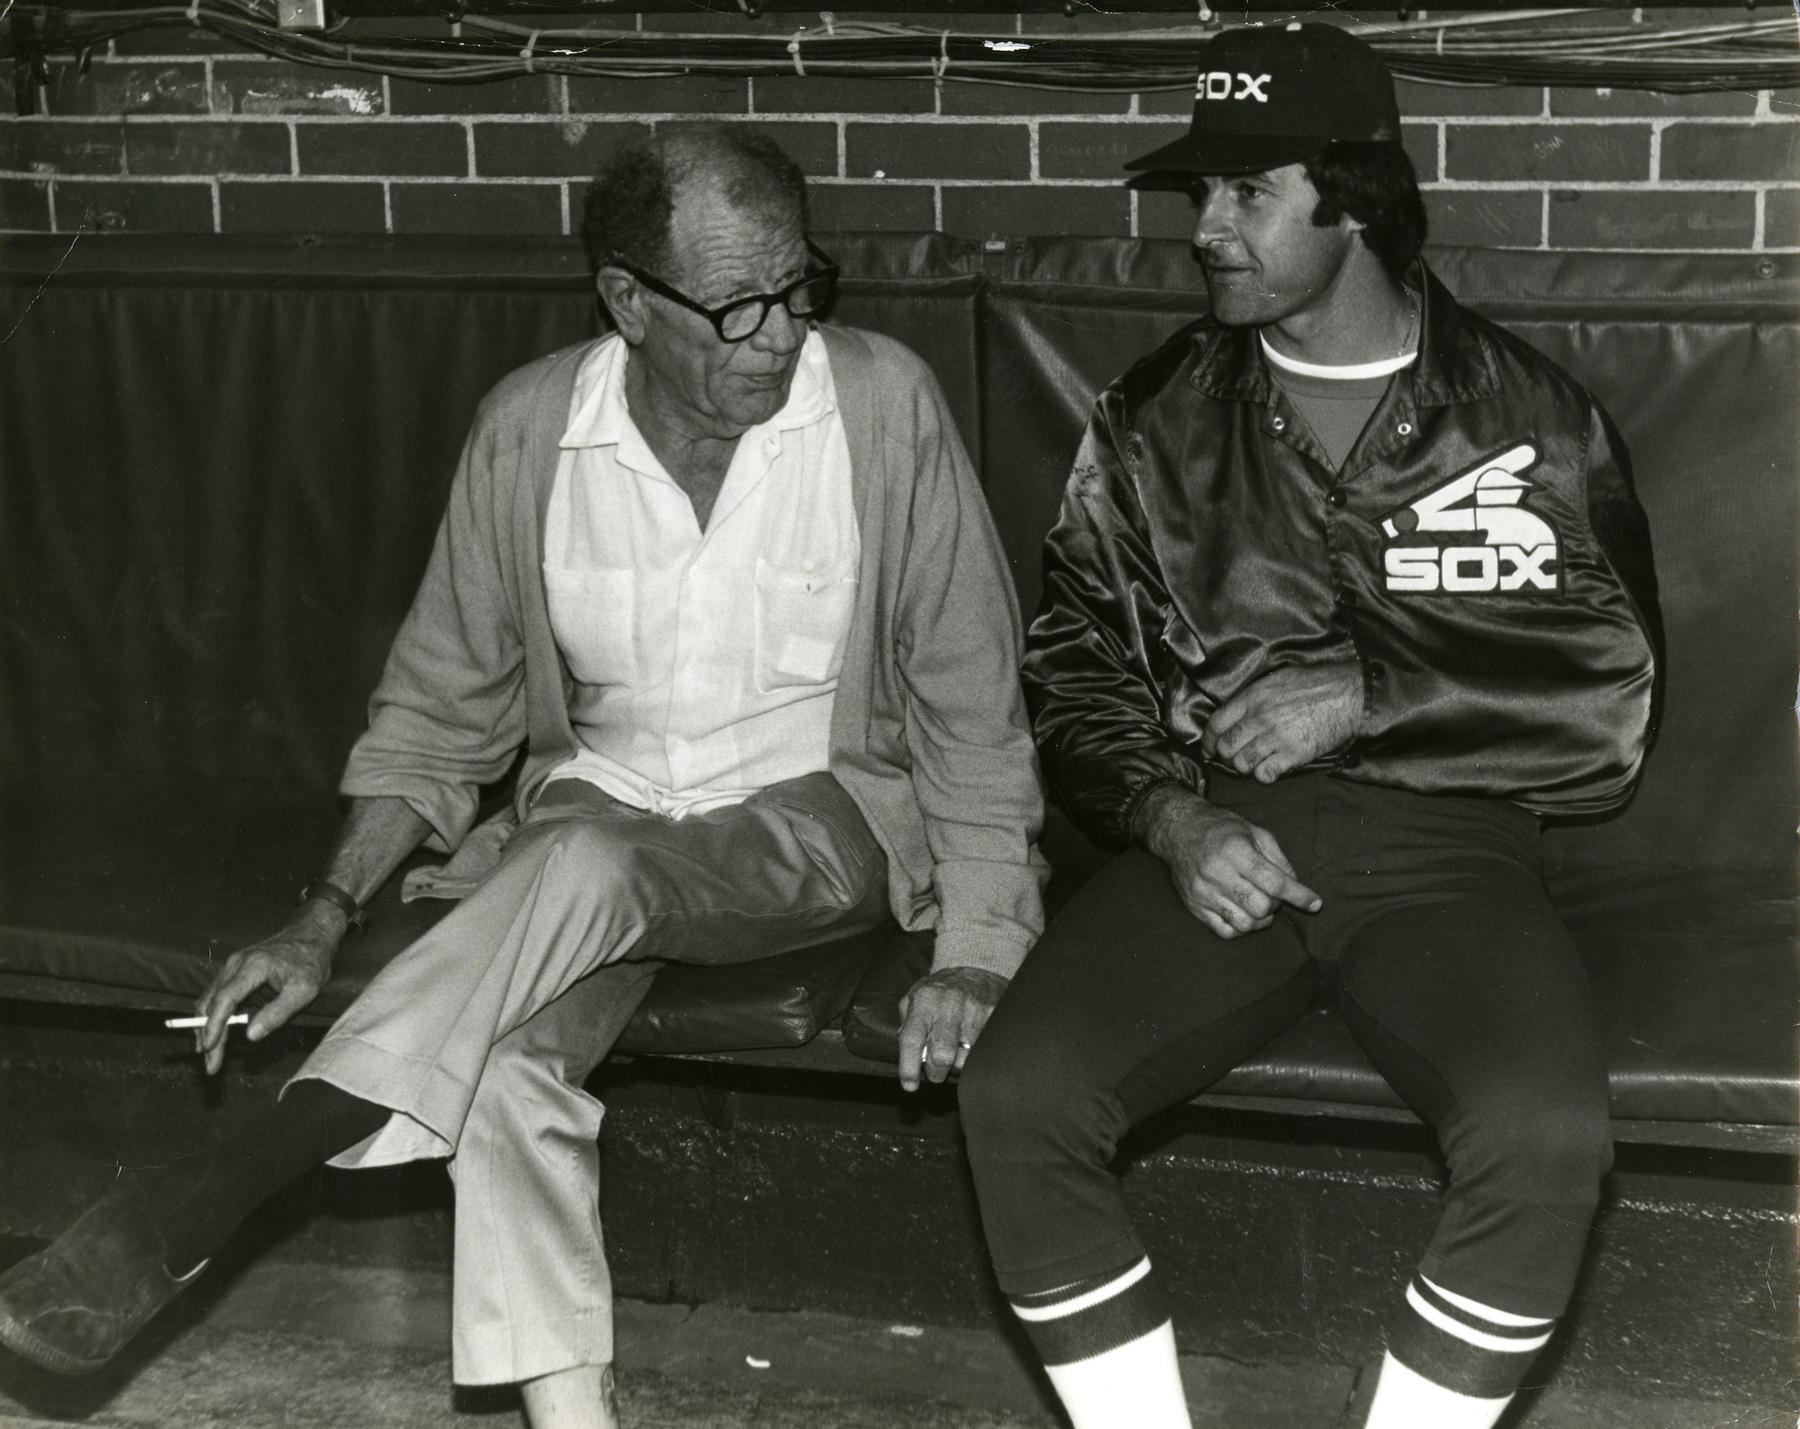 Tony La Russa and Bill Veeck in 1980.  Tony had dislocated his shoulder breaking up a fight the day before. (National Baseball Hall of Fame Library)